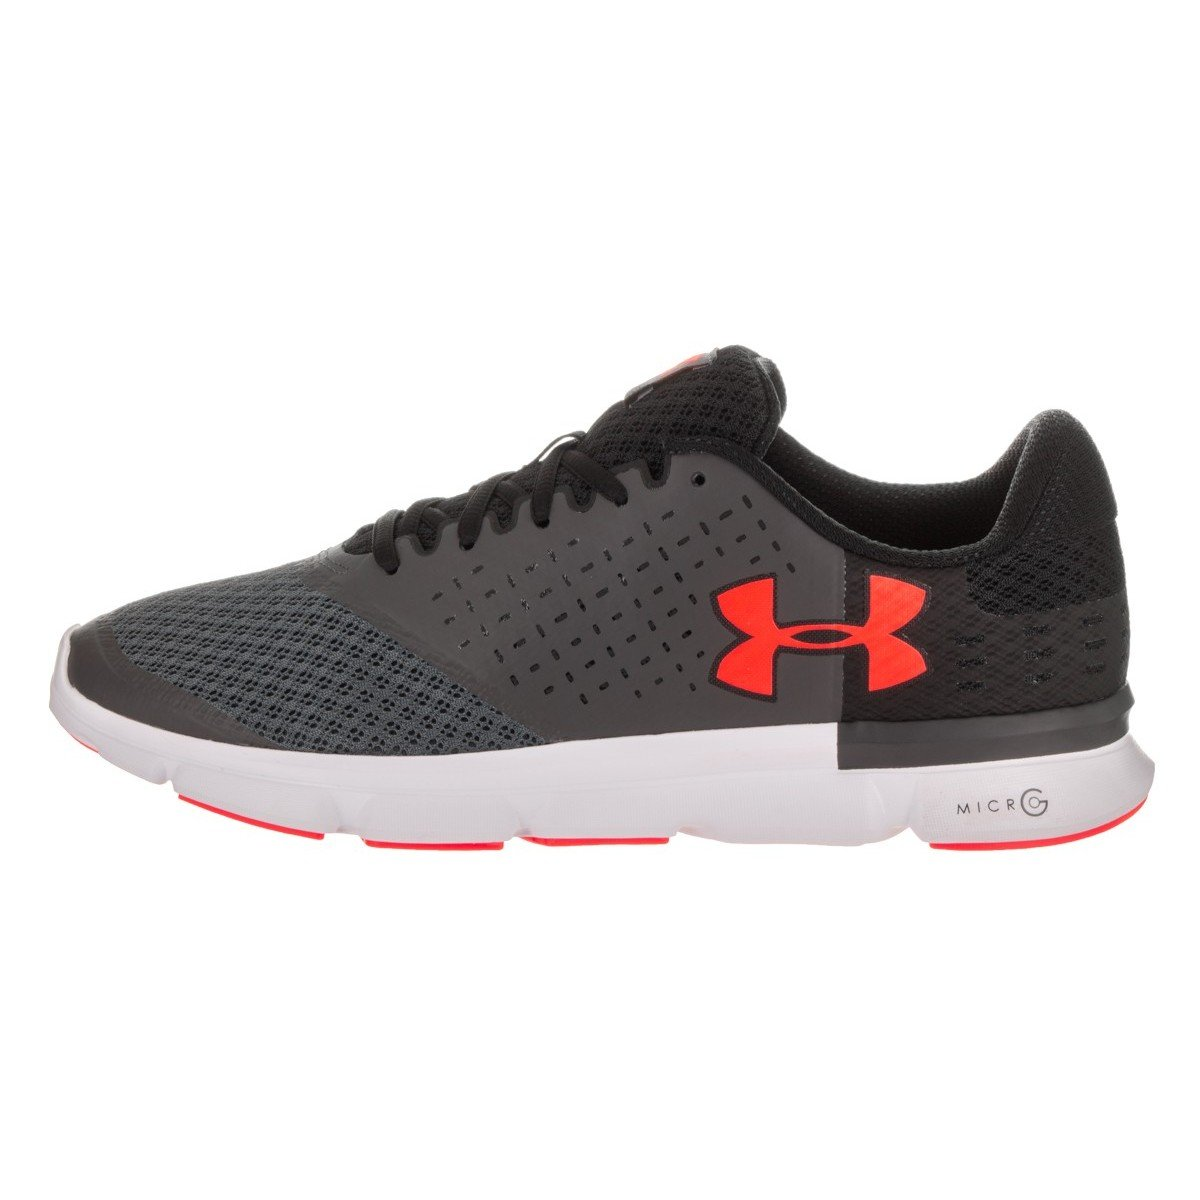 Under Armour Micro G Speed Swift 2 Hombre Zapatillas Gris -